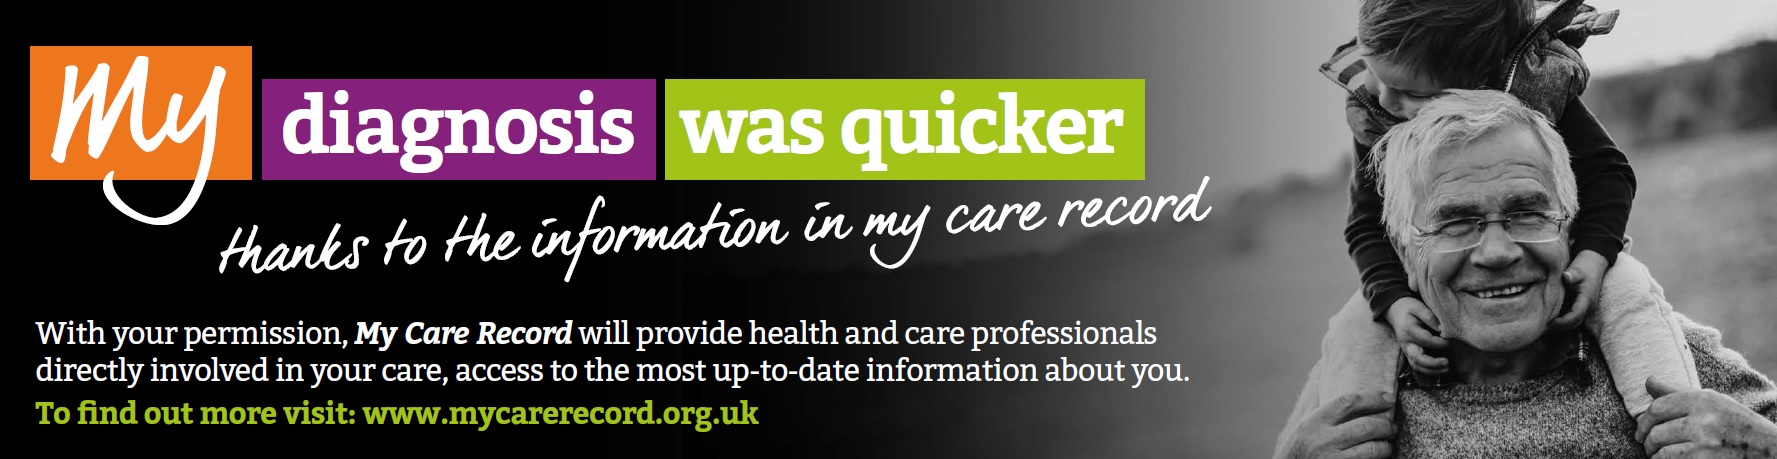 My diagnosis was quicker thanks to the information in my care record. With your permission, my care record will provide health and care professionals directly involved in your care access to the most up to date information about you. To find out more visit www.mycarerecord.org.uk